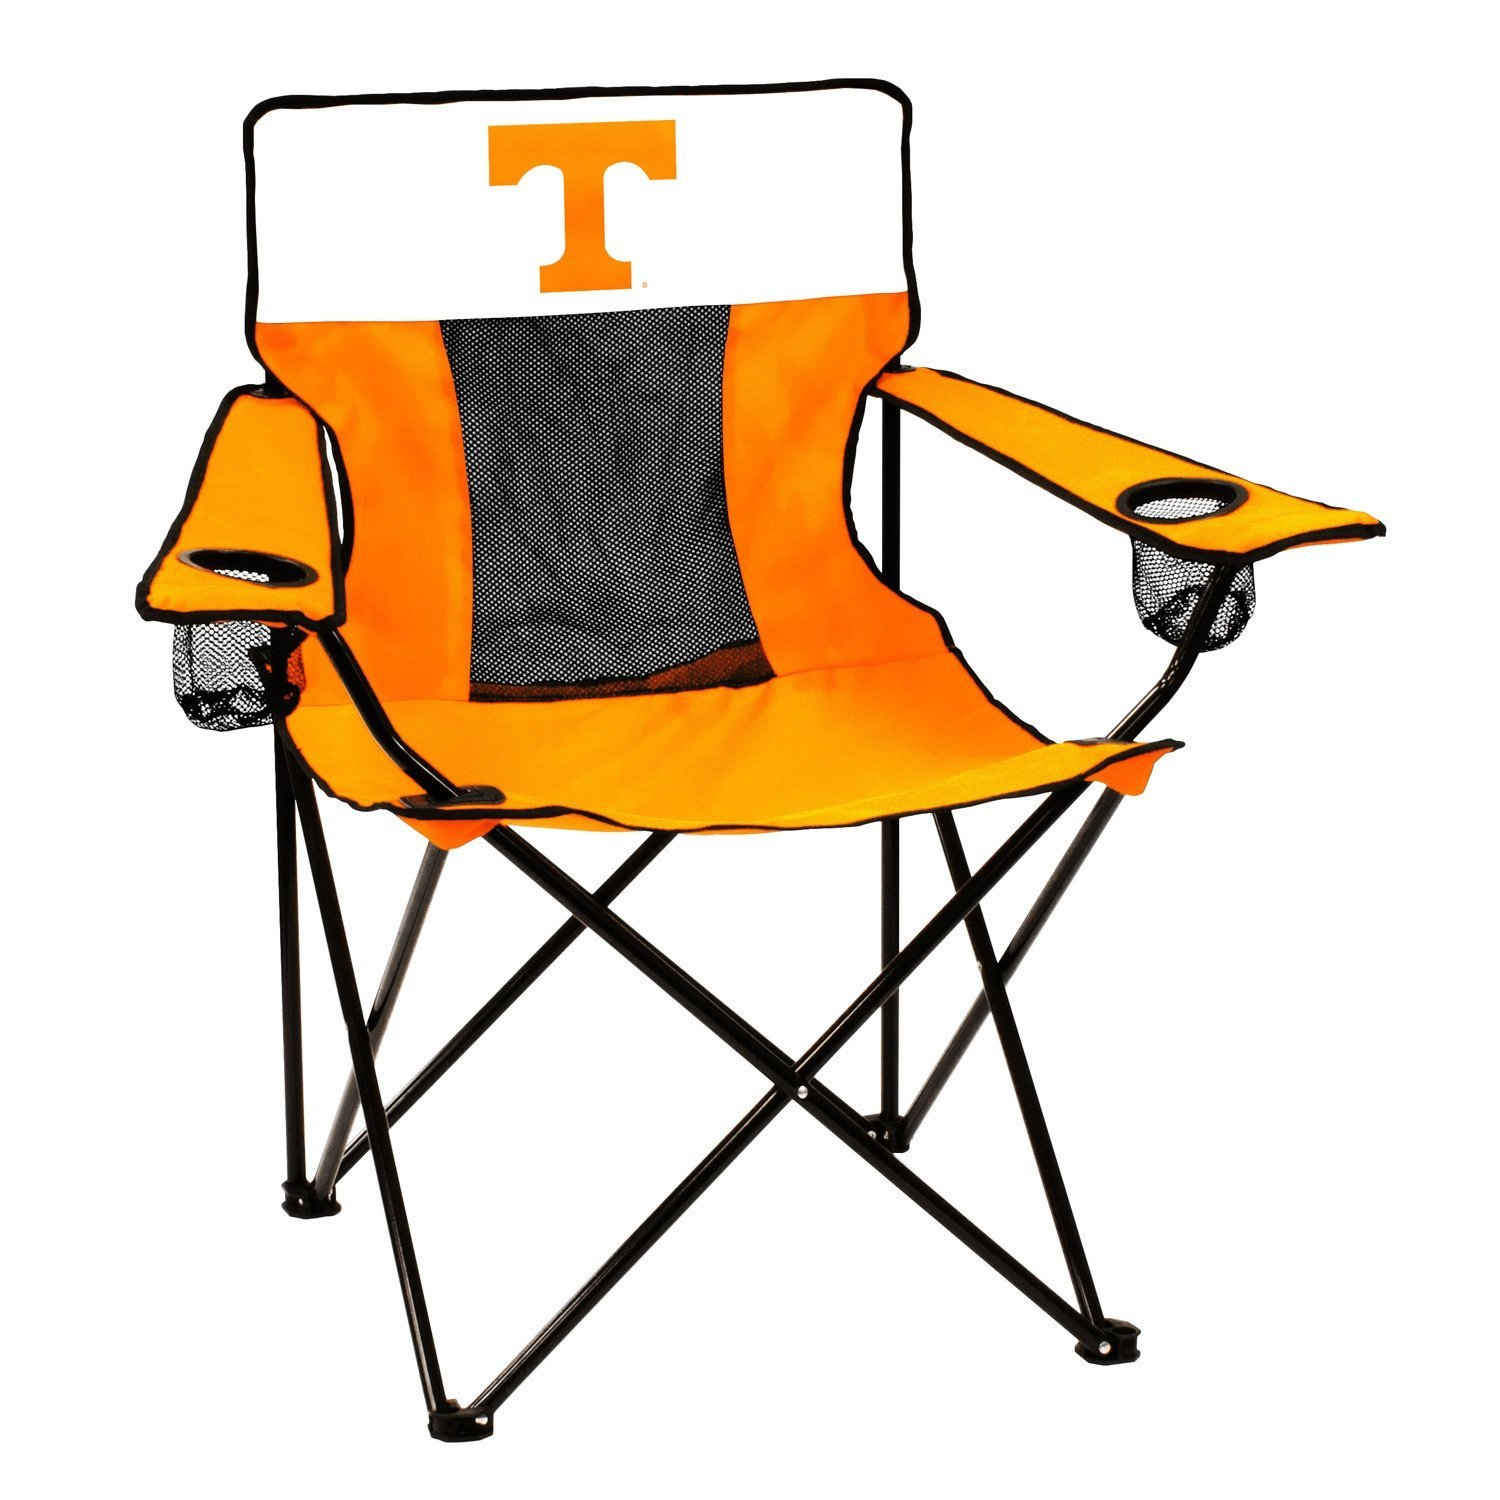 Amazon.com: University of Tennessee Elite Chair: Kitchen & Dining.